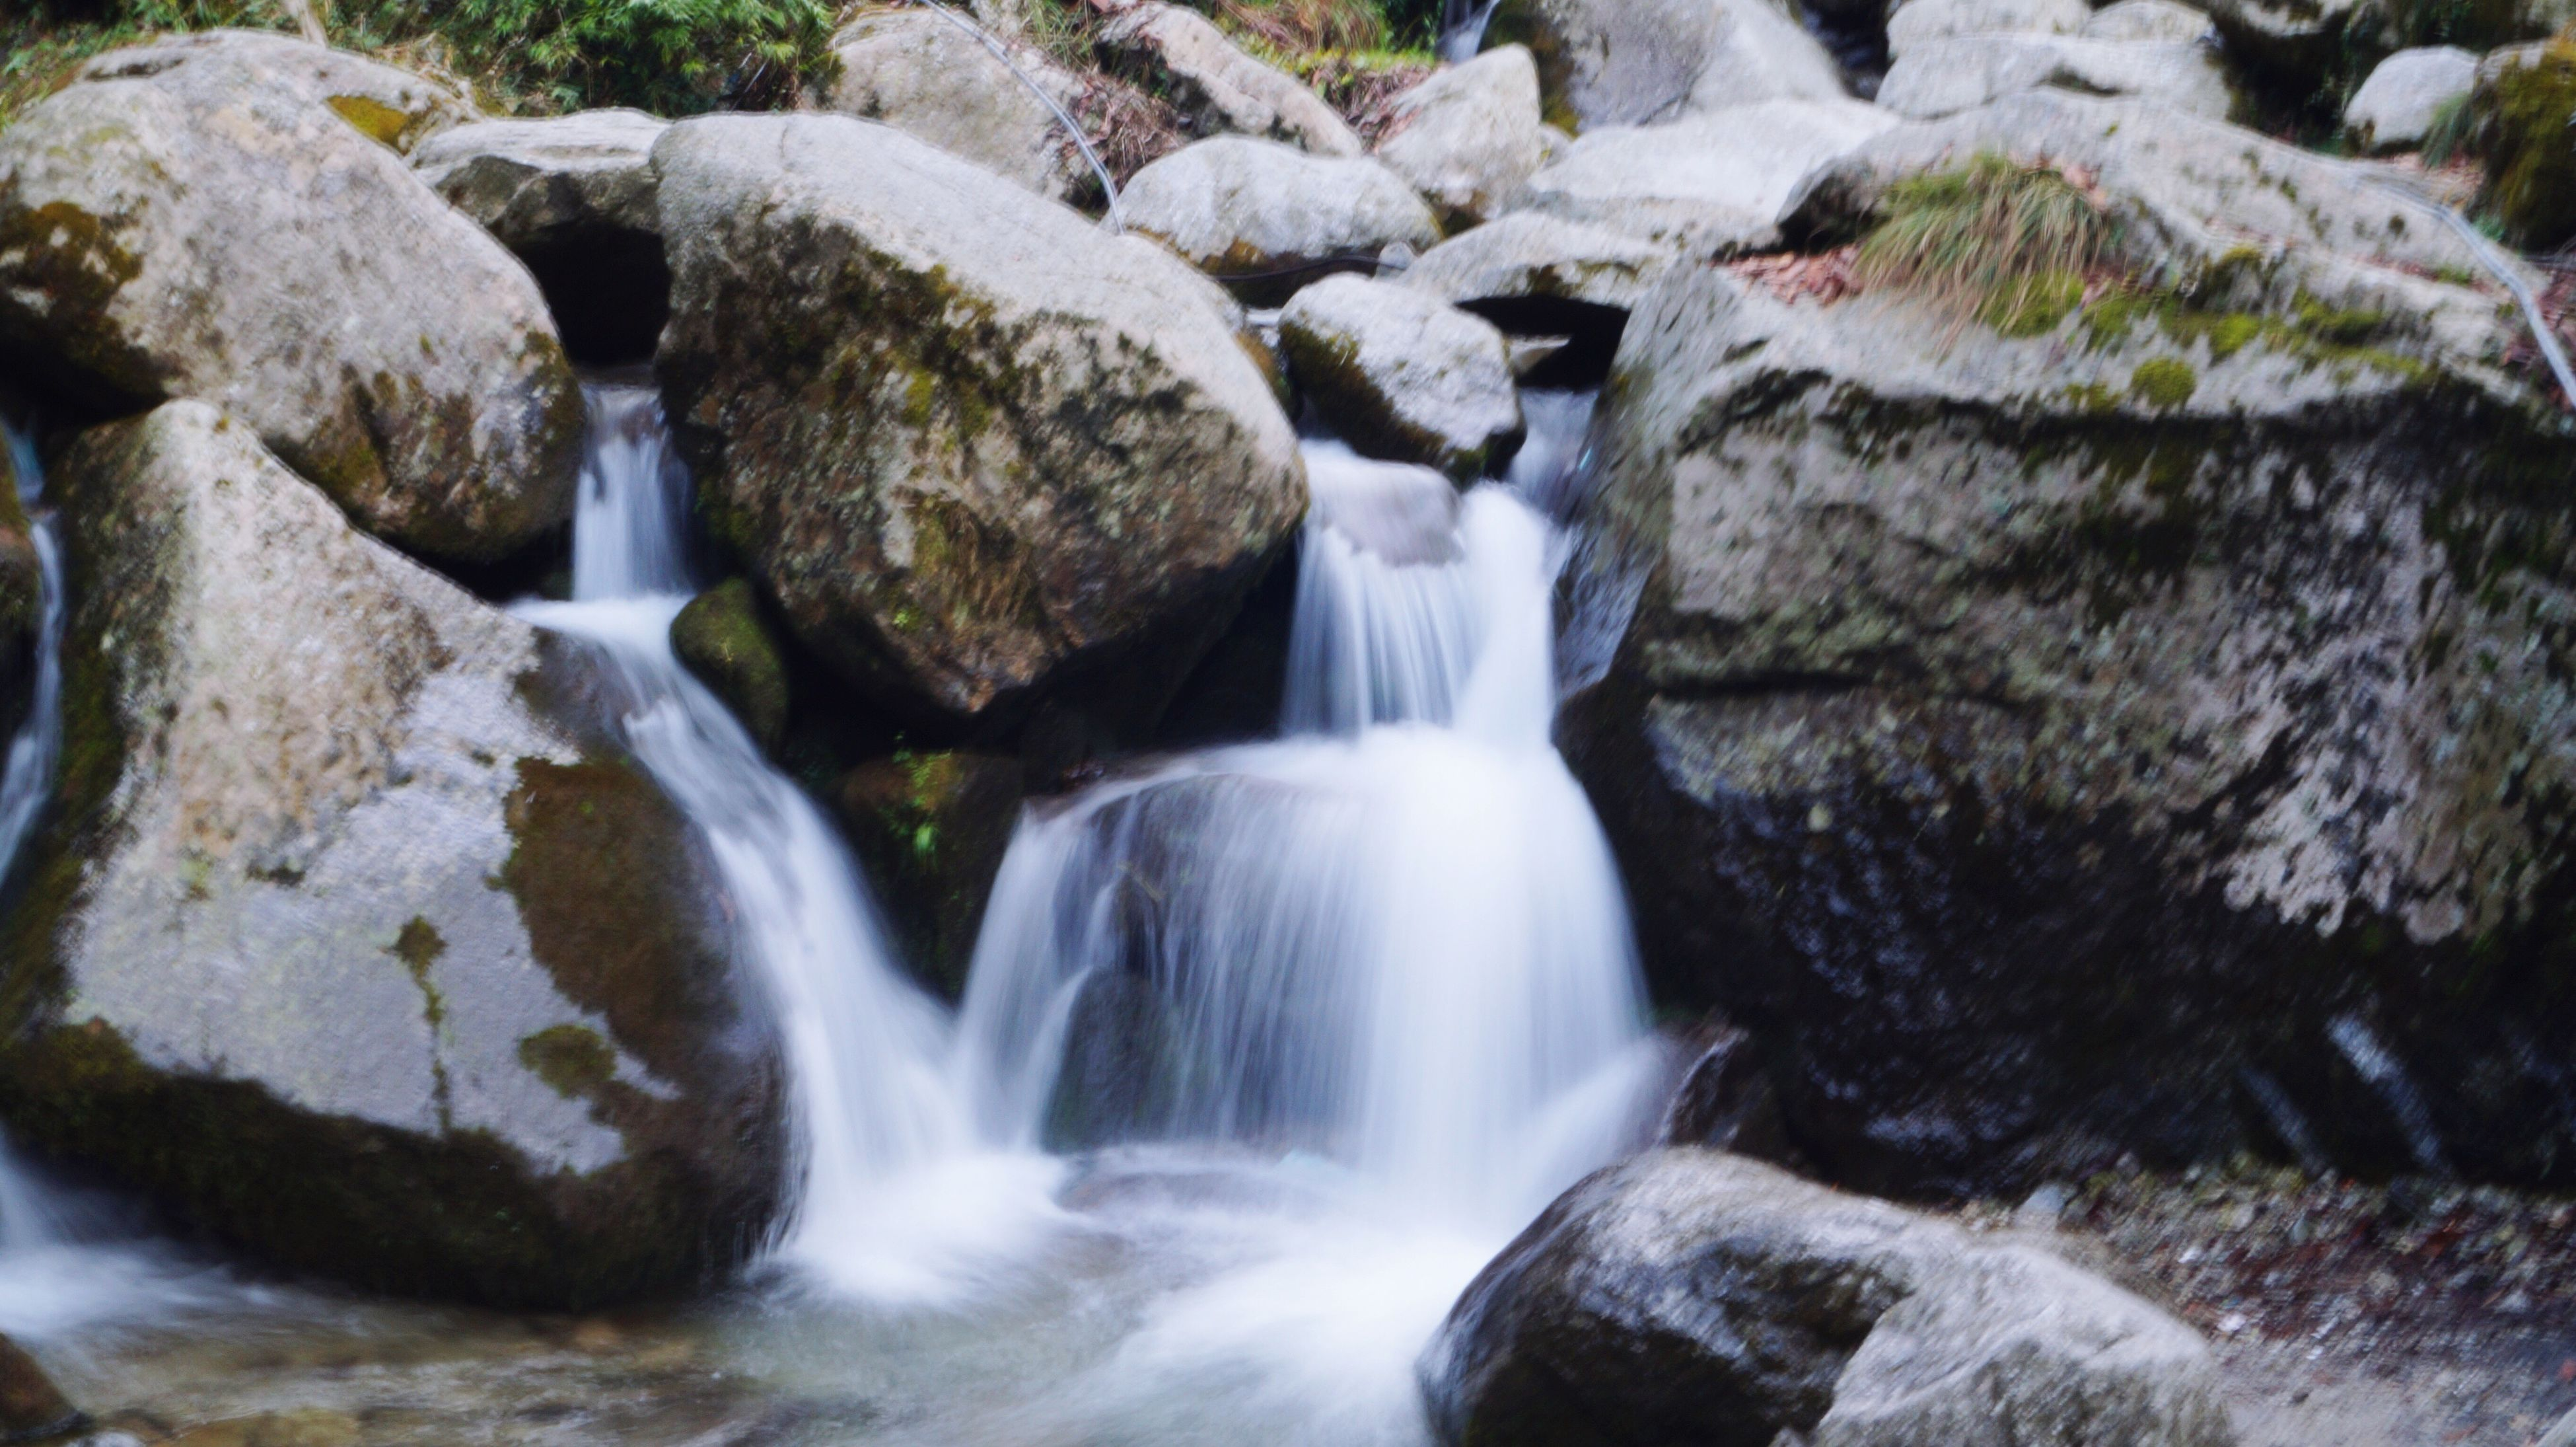 waterfall, water, long exposure, flowing, motion, flowing water, scenics, forest, beauty in nature, blurred motion, environment, rock - object, nature, power in nature, non-urban scene, purity, moss, day, rock formation, rock, tranquil scene, waterfront, outdoors, natural landmark, no people, tranquility, non urban scene, remote